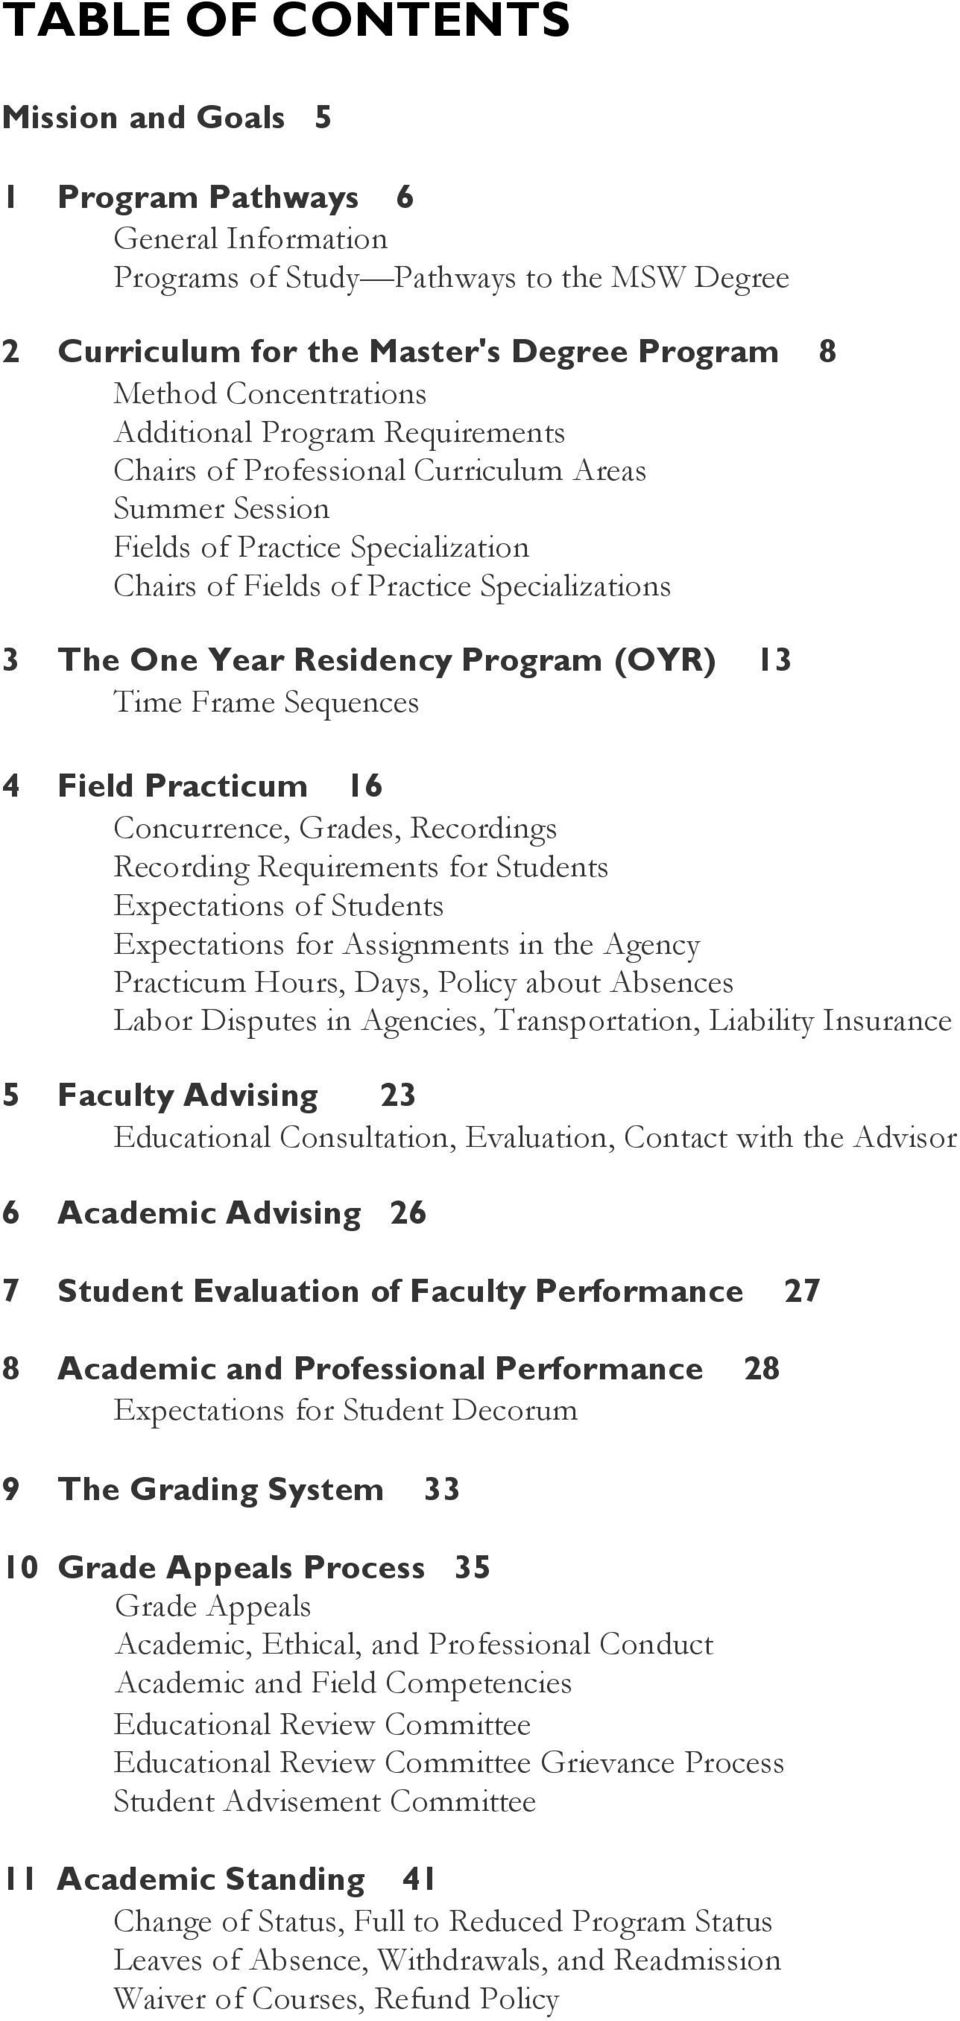 (OYR) 13 Time Frame Sequences 4 Field Practicum 16 Concurrence, Grades, Recordings Recording Requirements for Students Expectations of Students Expectations for Assignments in the Agency Practicum